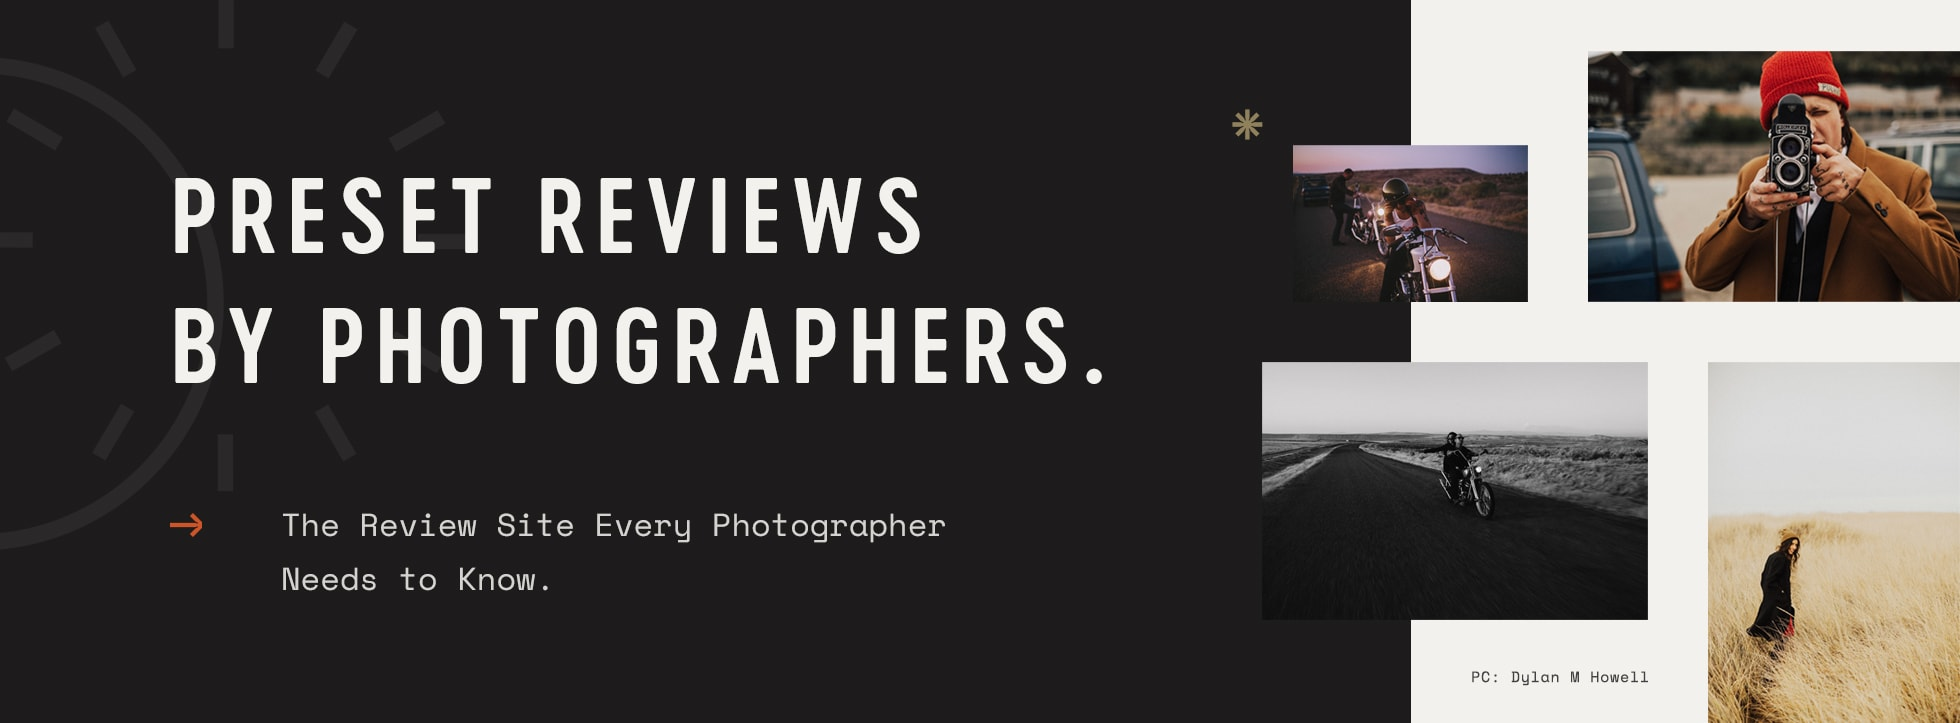 New Preset Review Site // Good Presets